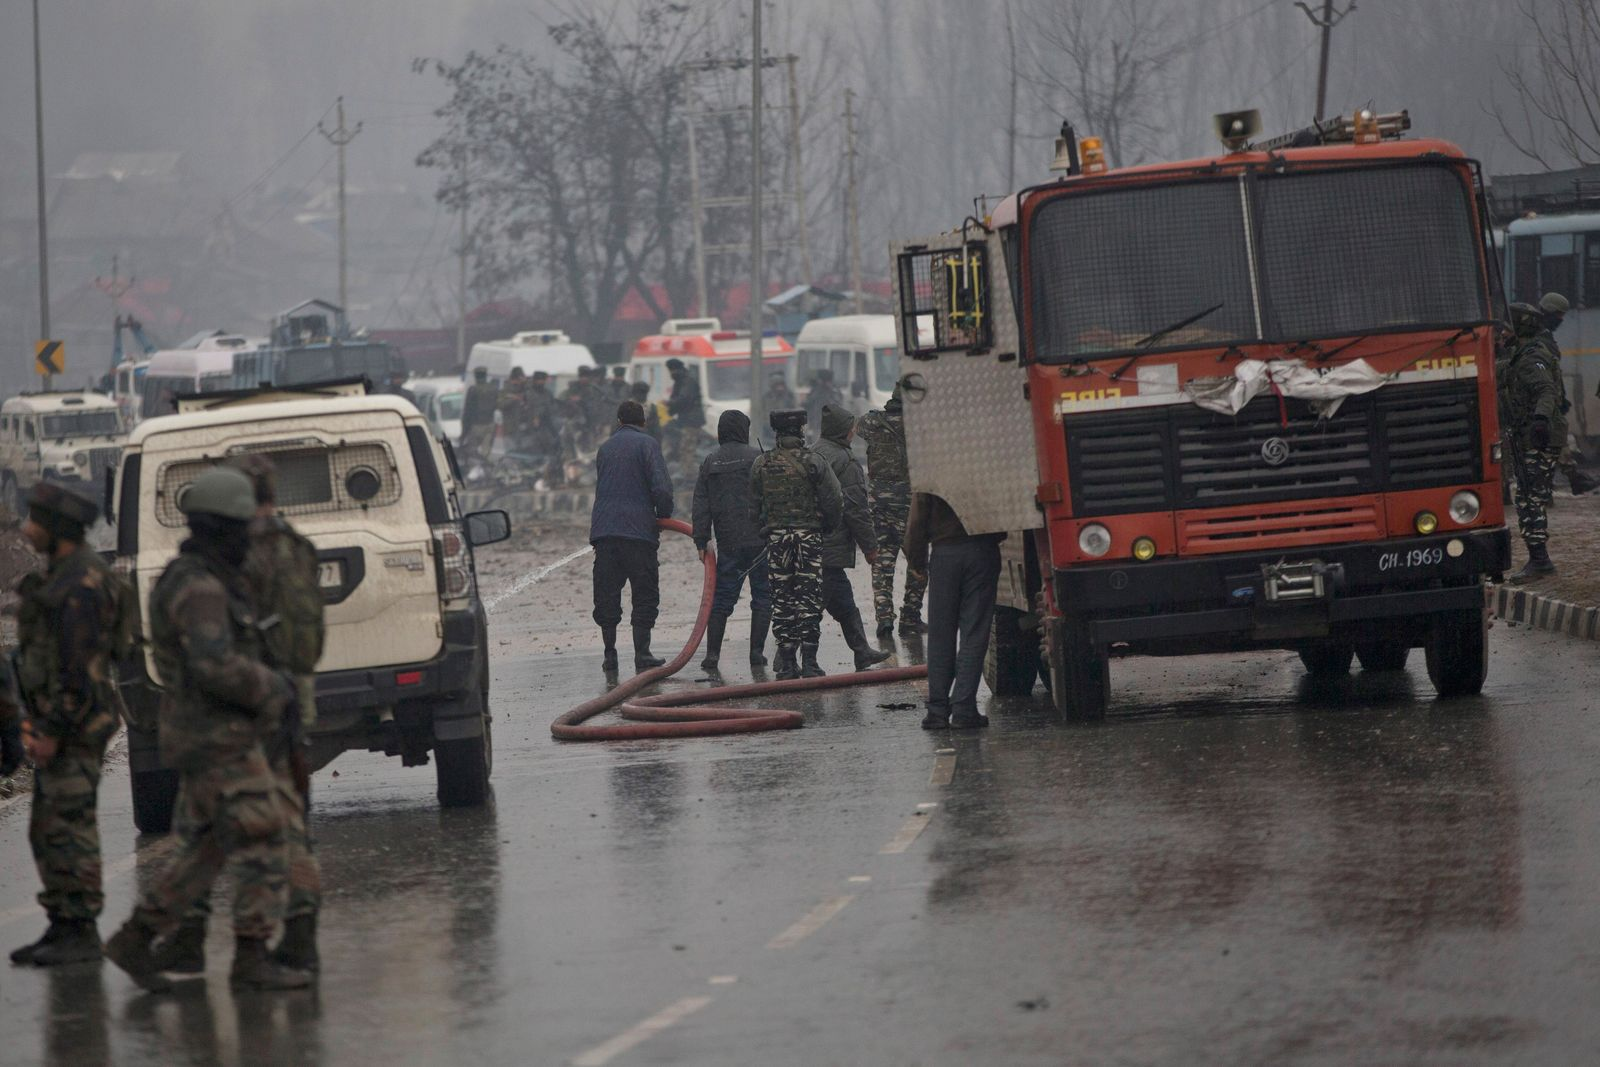 Indian firemen spray water on a road to wash away blood after an explosion in Pampore, Indian-controlled Kashmir, Thursday, Feb. 14, 2019. (AP Photo/Dar Yasin)